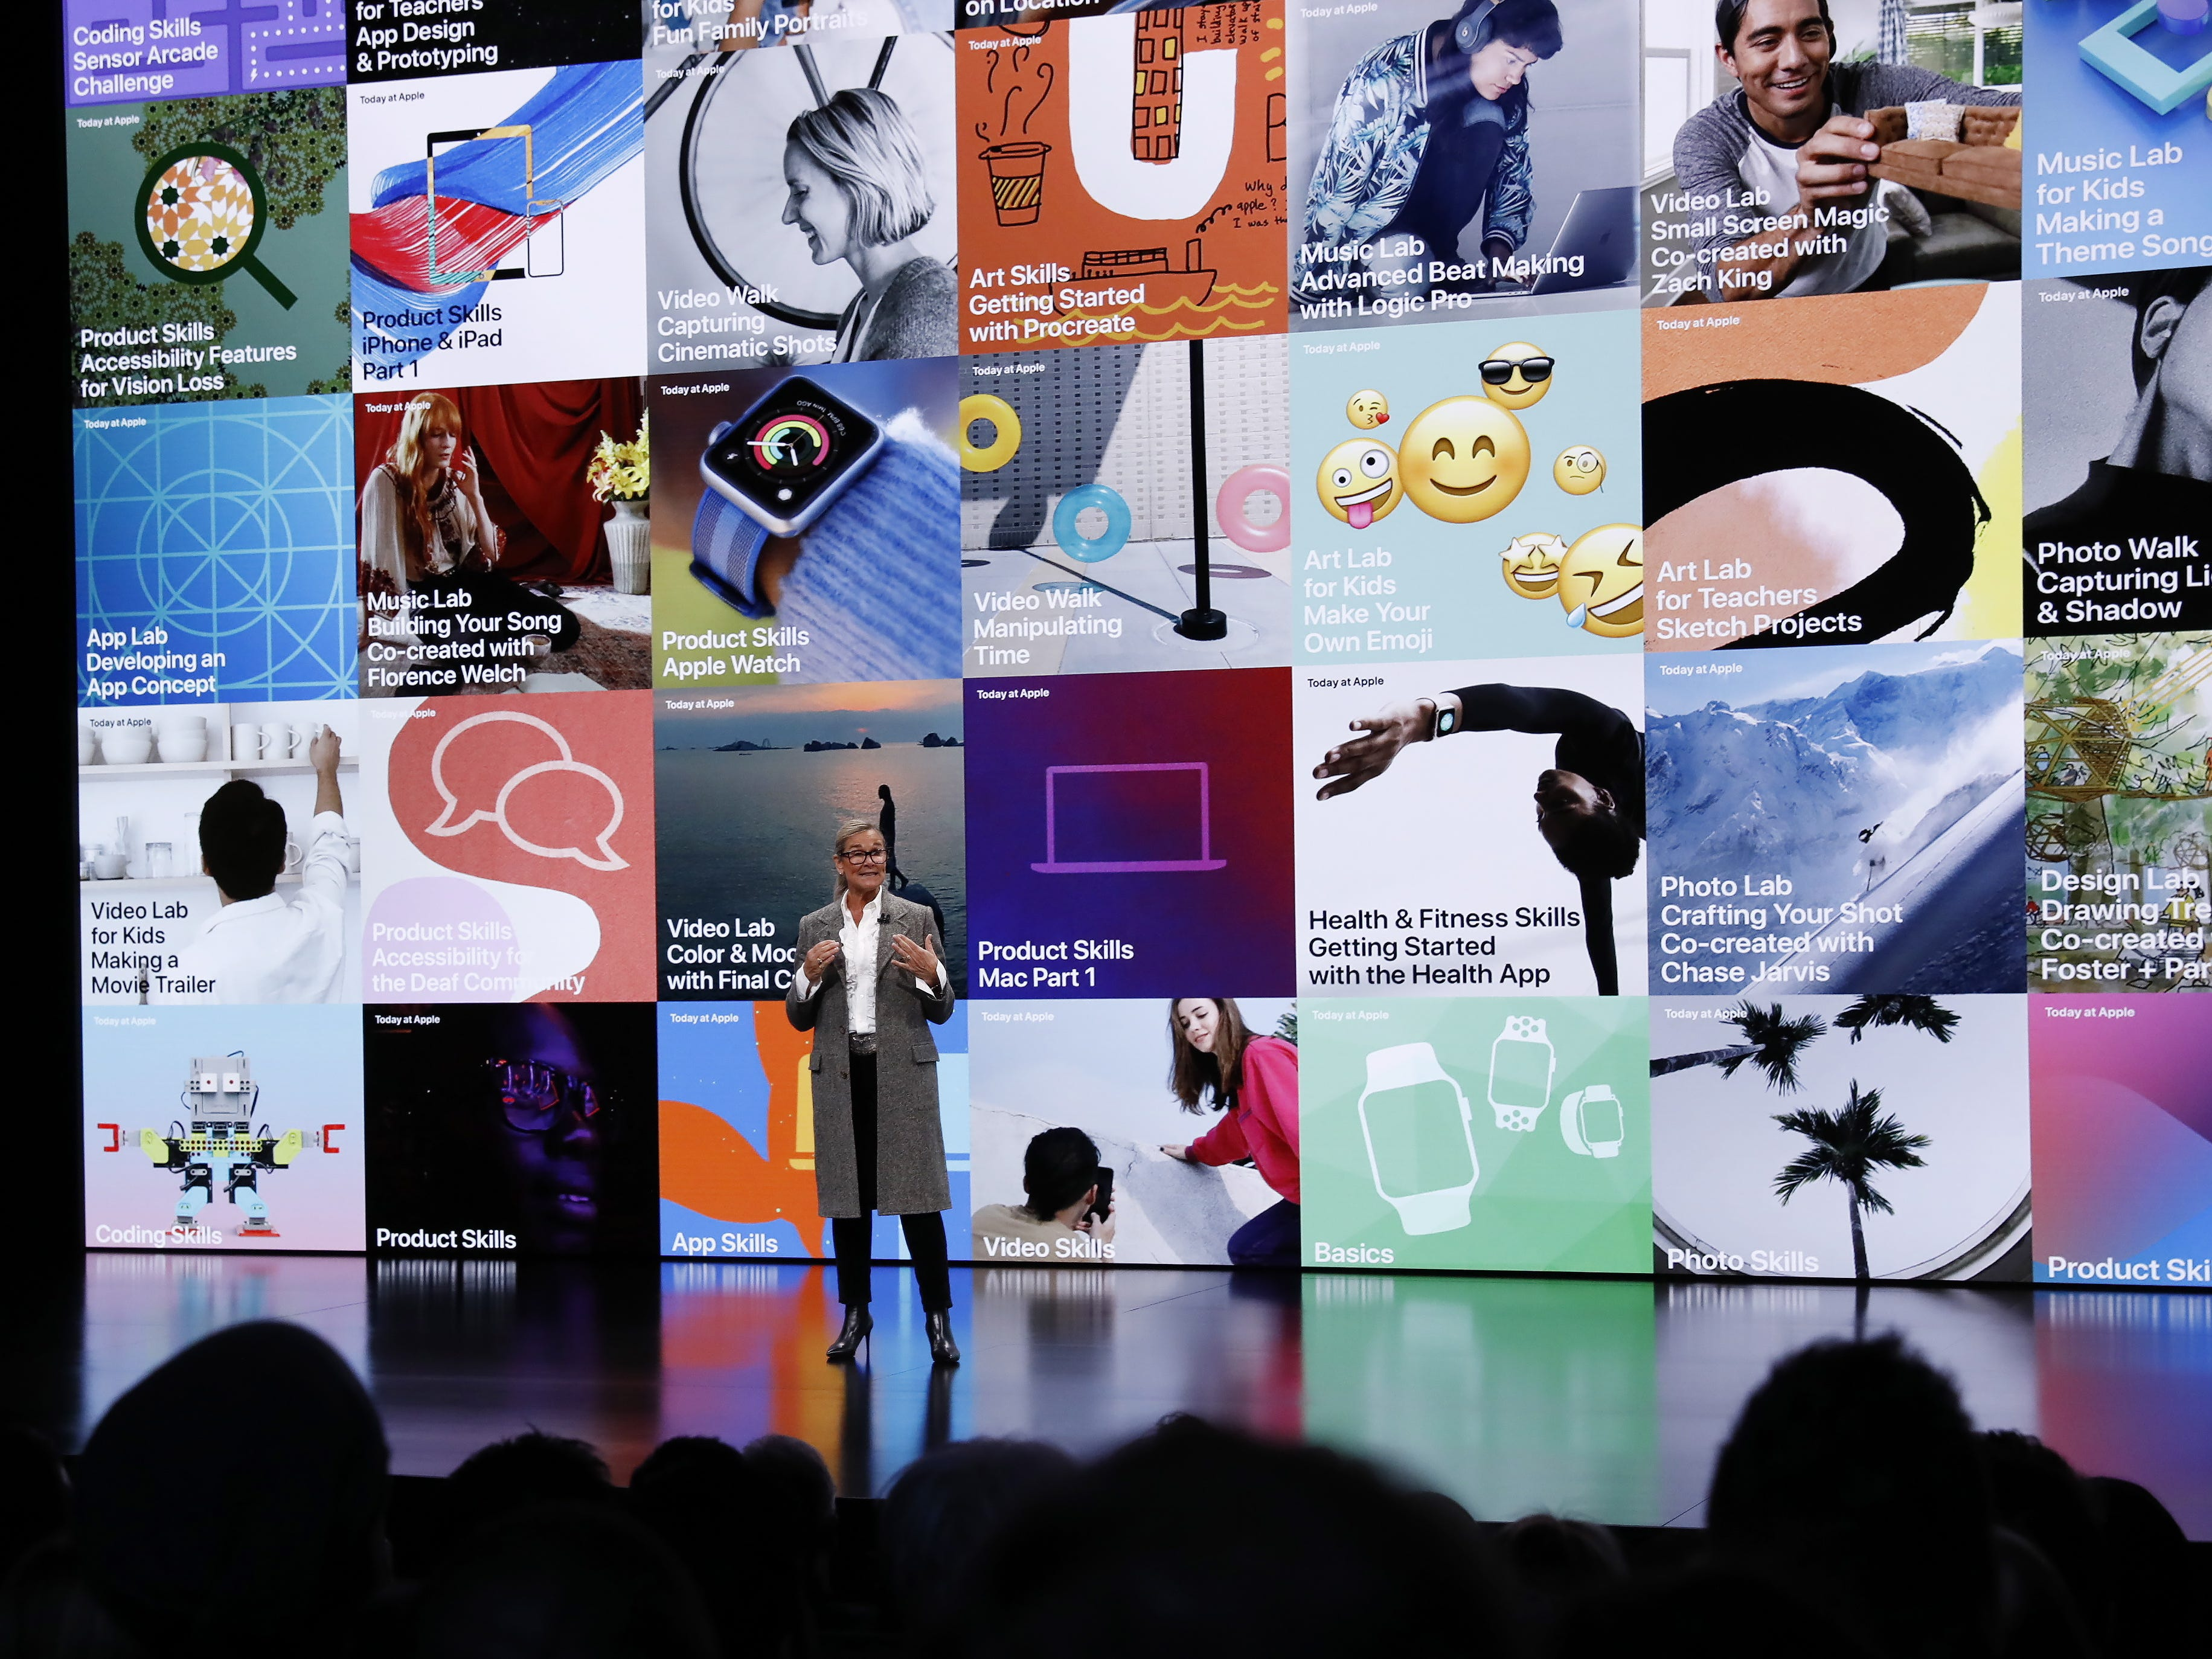 Apple Senior Vice President Angela Ahrendts speaks during an Apple special event at the Howard Gilman Opera House at the Brooklyn Academy of Music before the start of an Apple event in New York, Tuesday, Oct. 30, 2018.